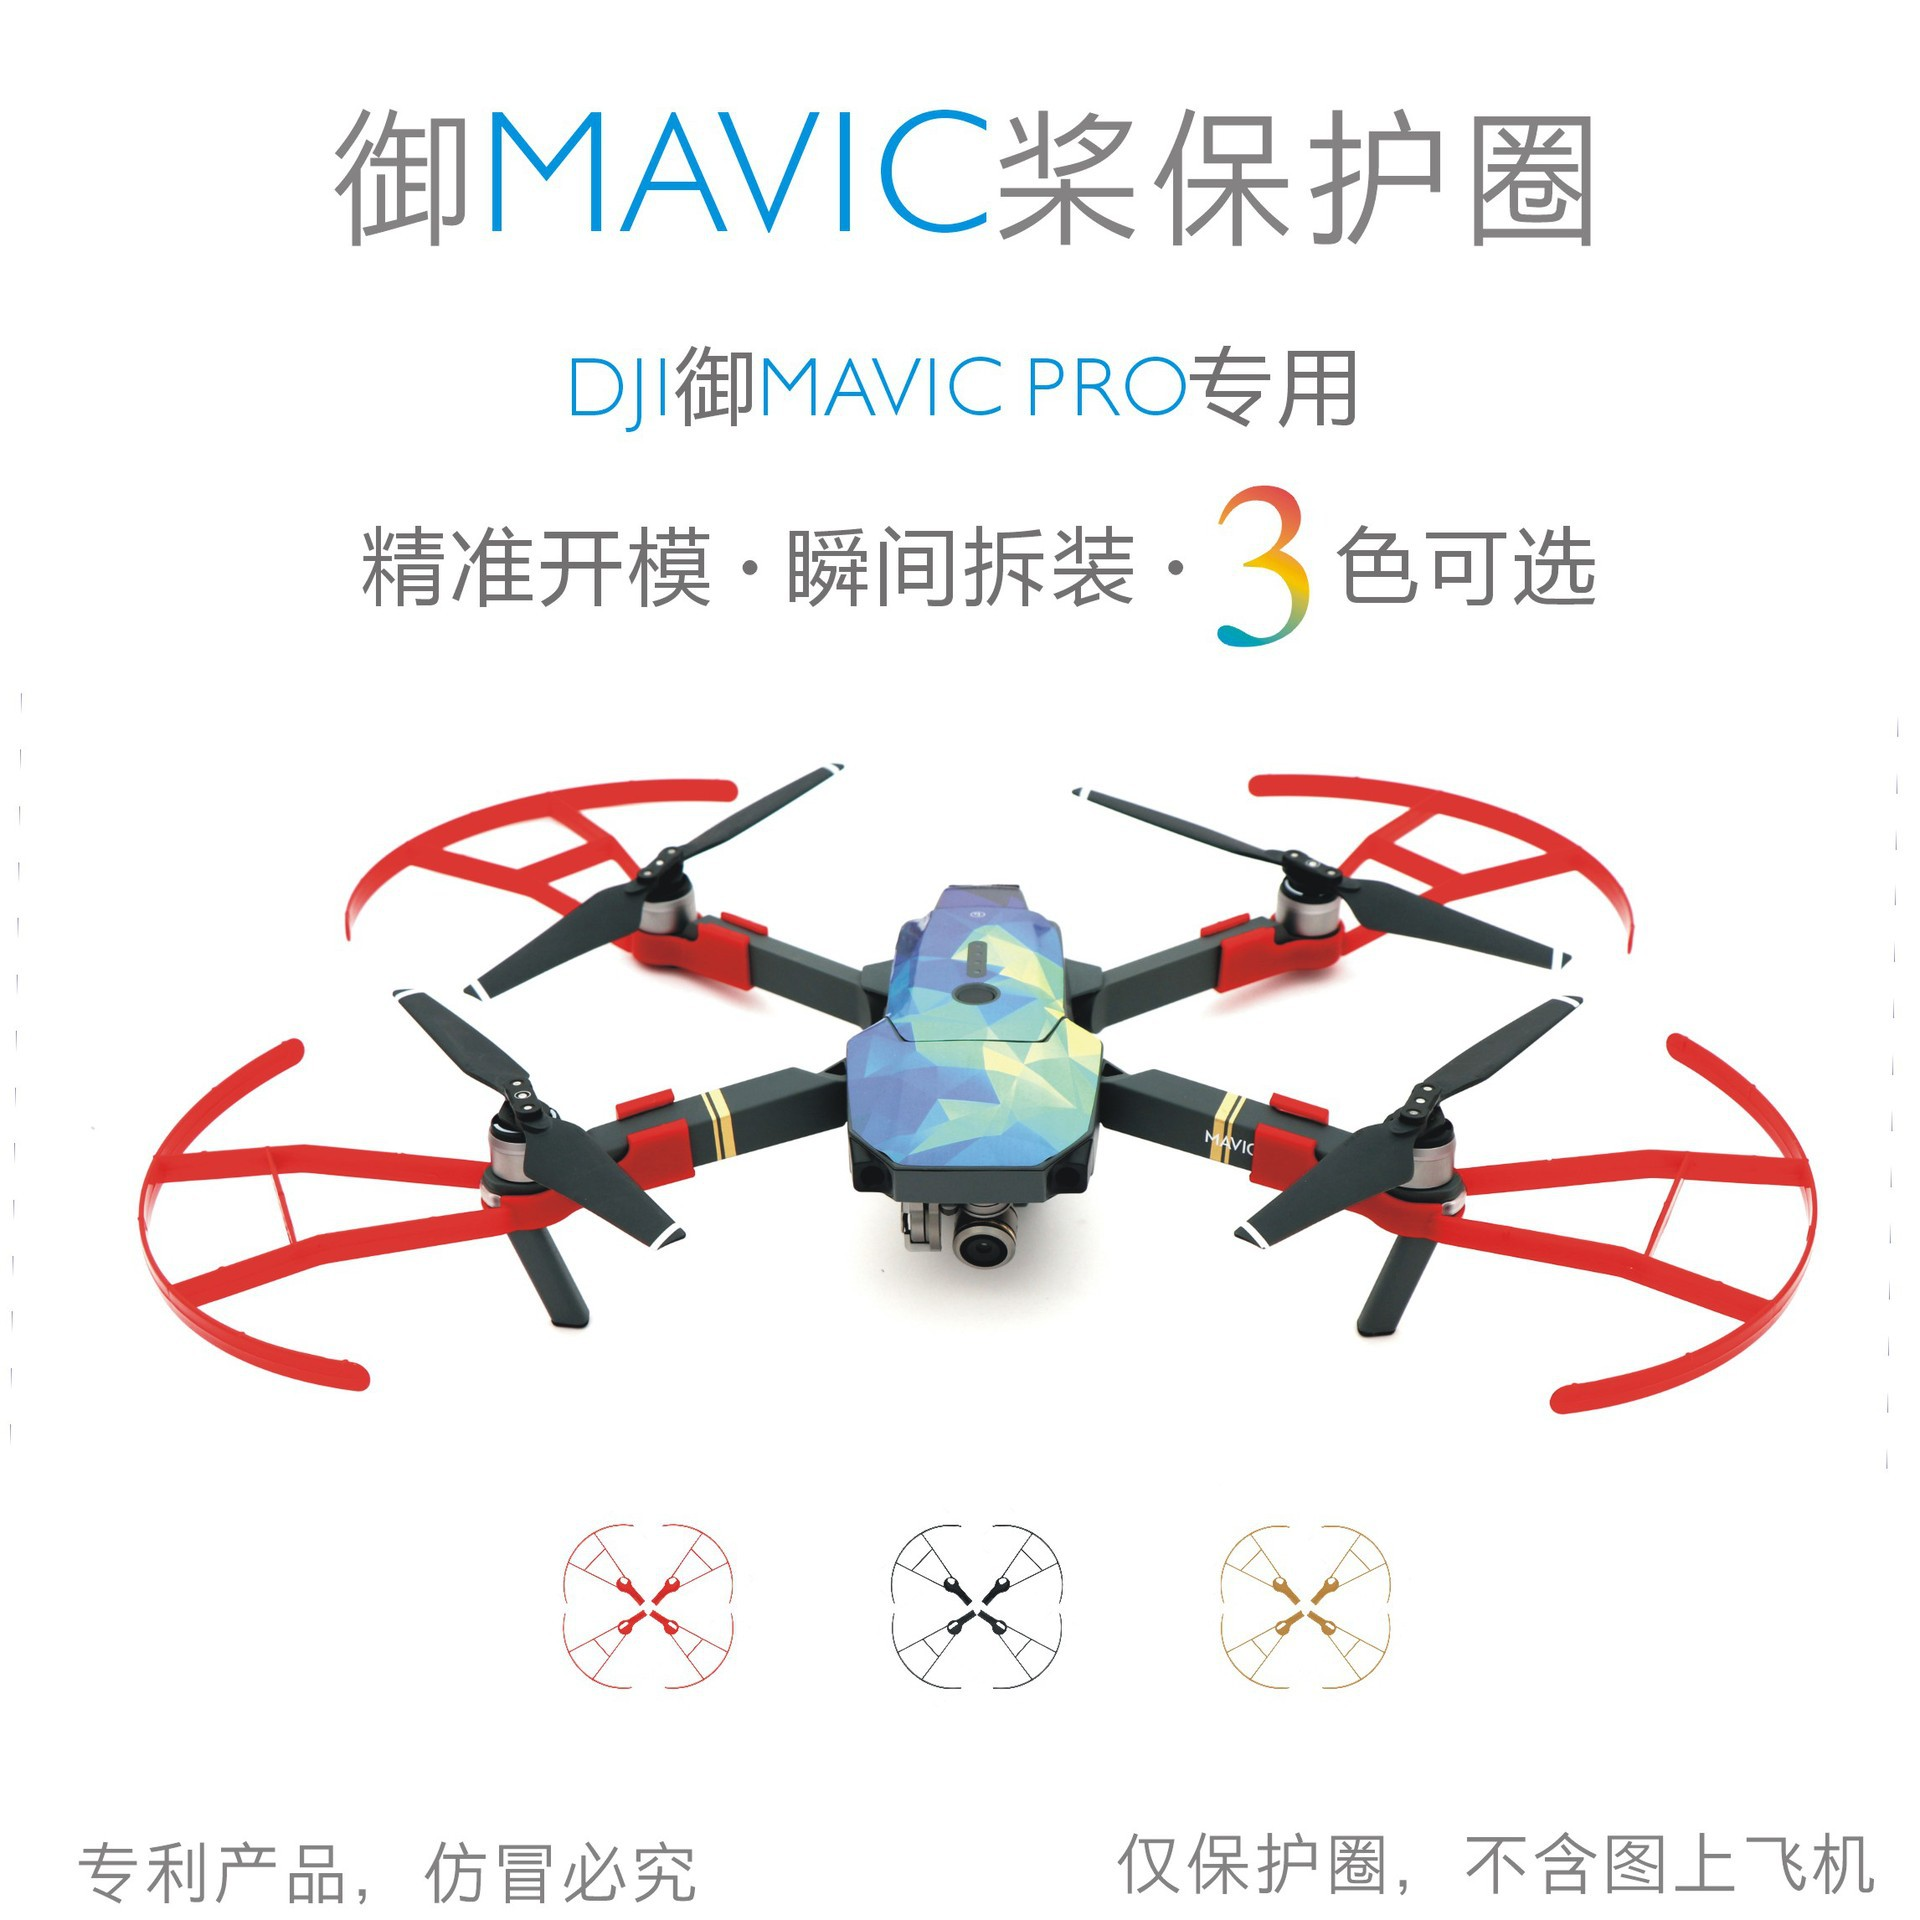 Dji Yulai Mavic Pro Paddle Protection Ring Unmanned Aerial Vehicle Anticollision Coil Cover Protection Ring Not Loudspeaker Obst